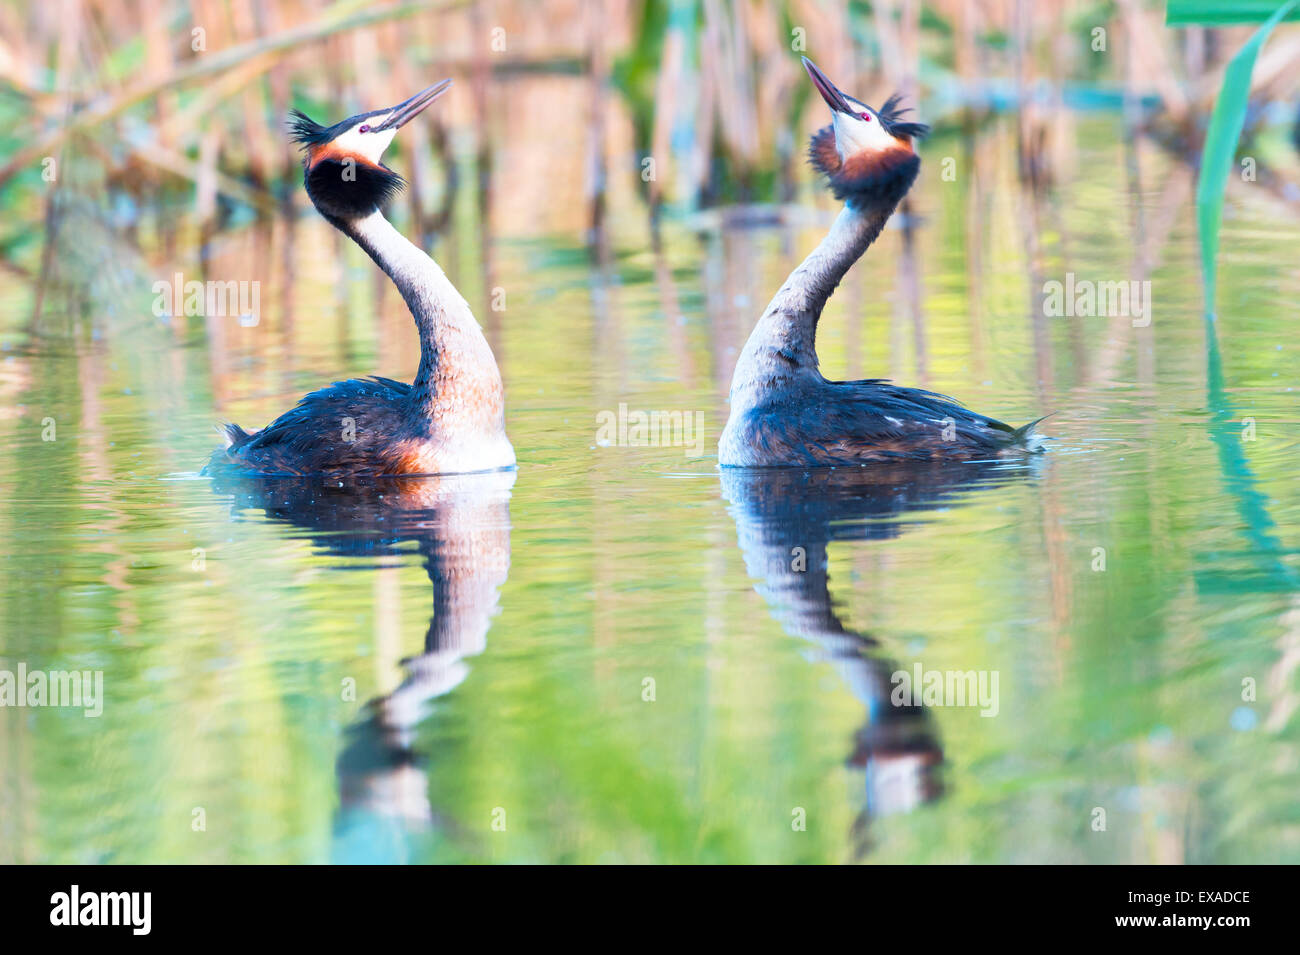 Great Crested Grebes (Podiceps cristatus) doing a mating dance, Canton of Vaud, Switzerland - Stock Image